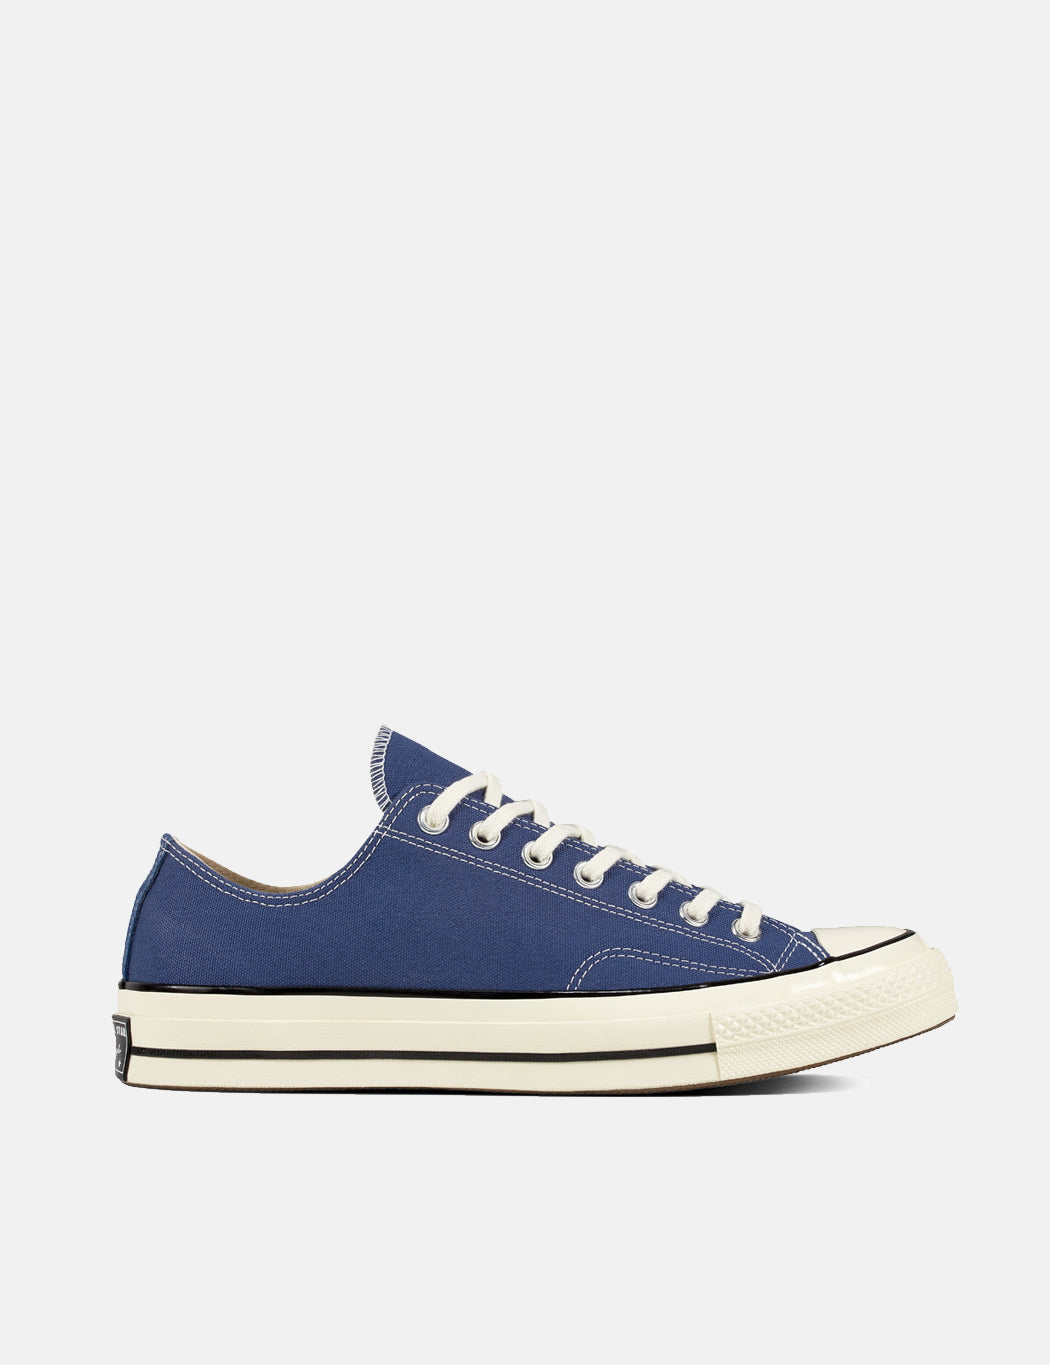 converse 70s navy Online Shopping for